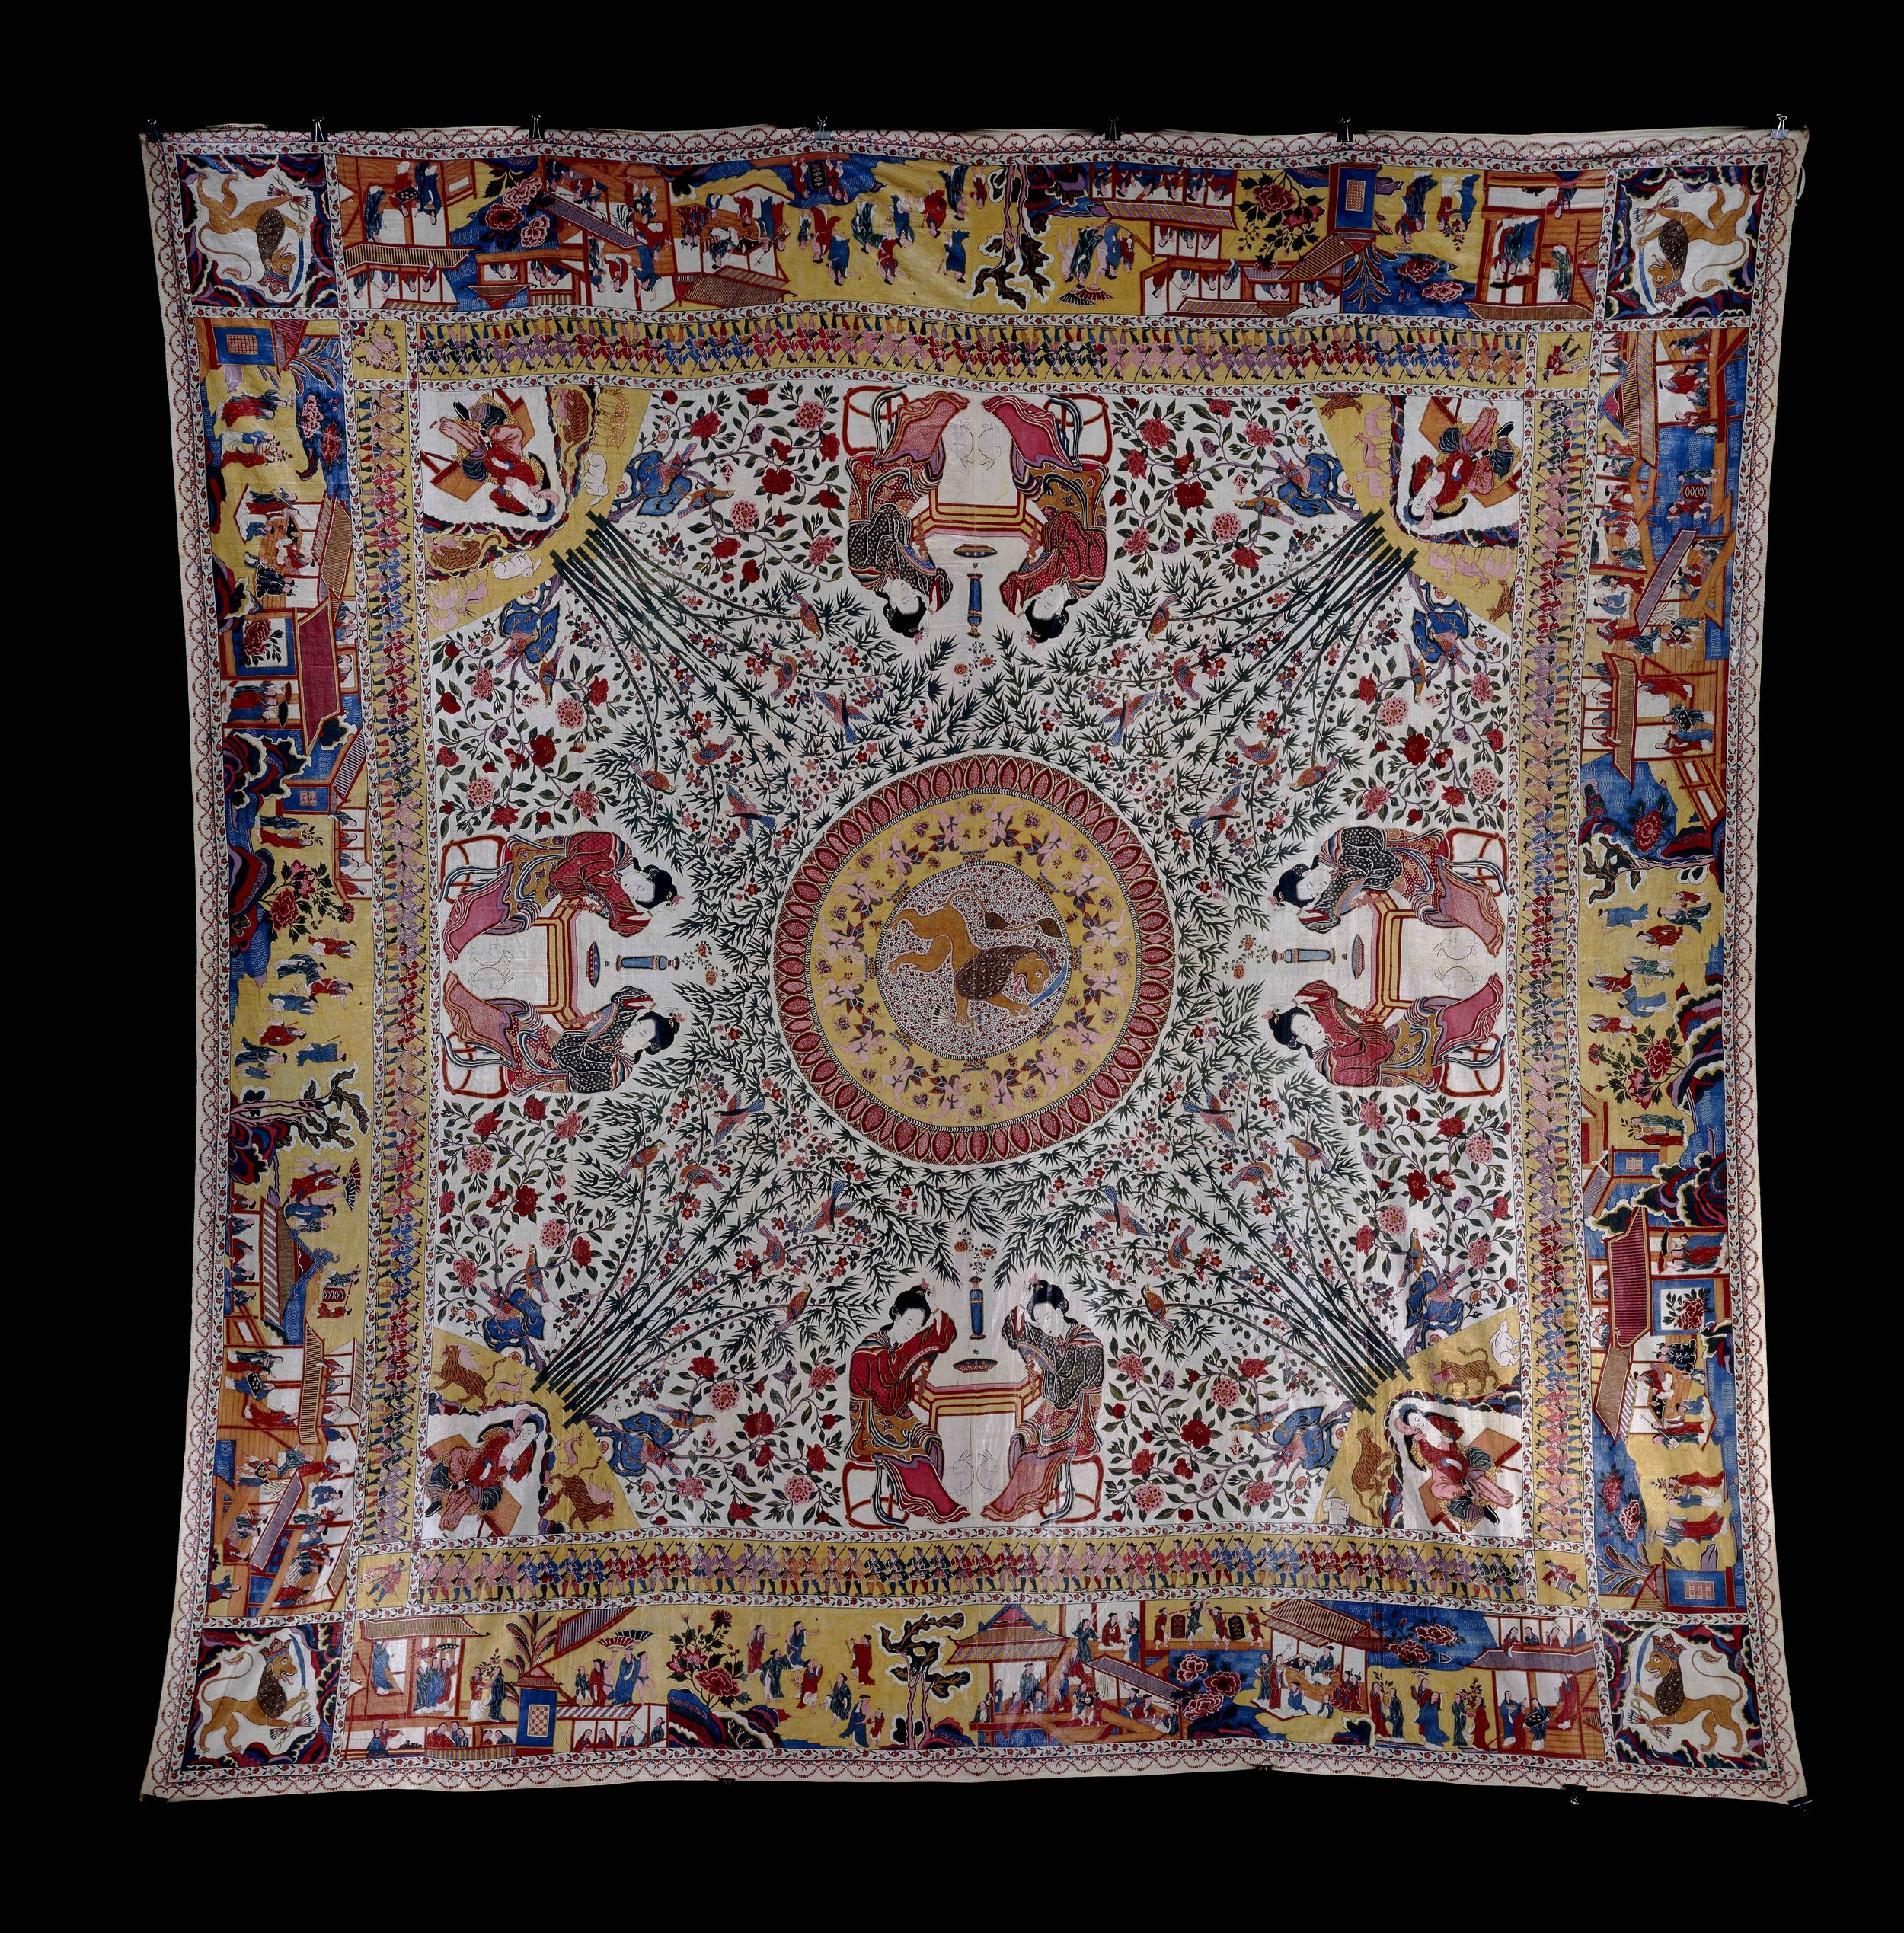 Trade Textile © The Trustees of the British Museum